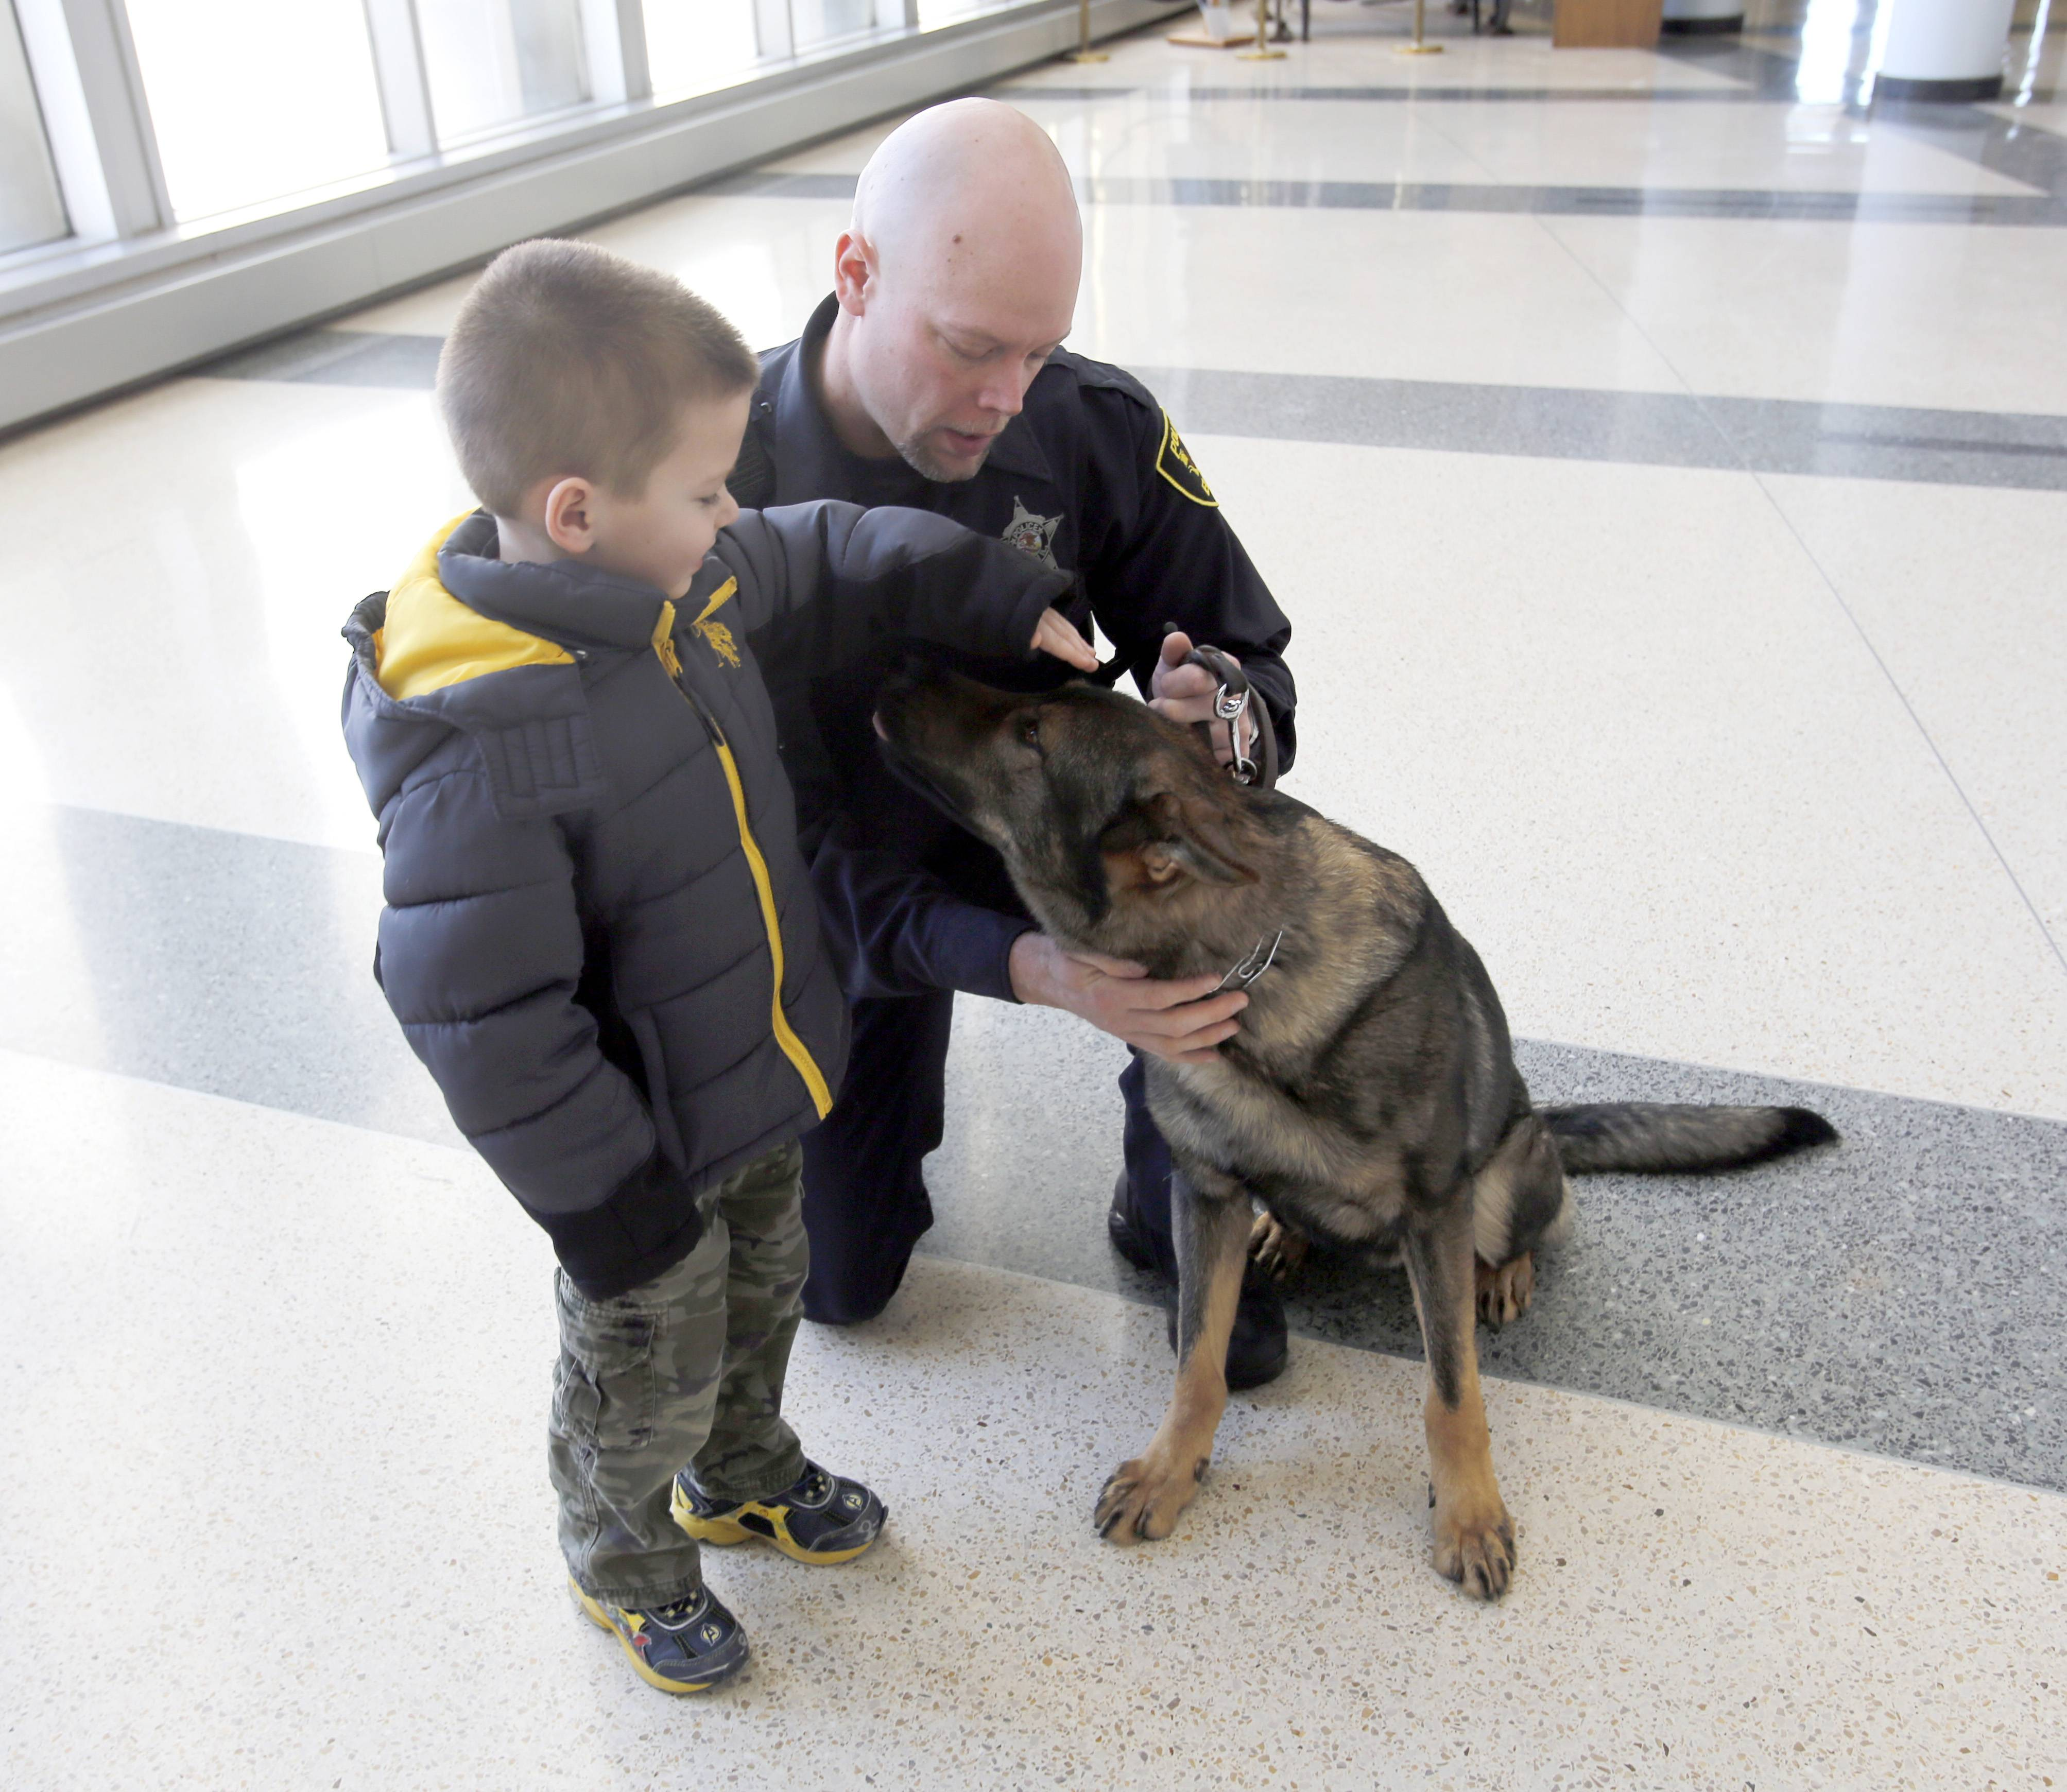 Anthony Raajcevich, 5, of Elgin, gets a chance to meet the Elgin Police Department's new police dog, Colt. Officer Chad Schuttrow is his handler.